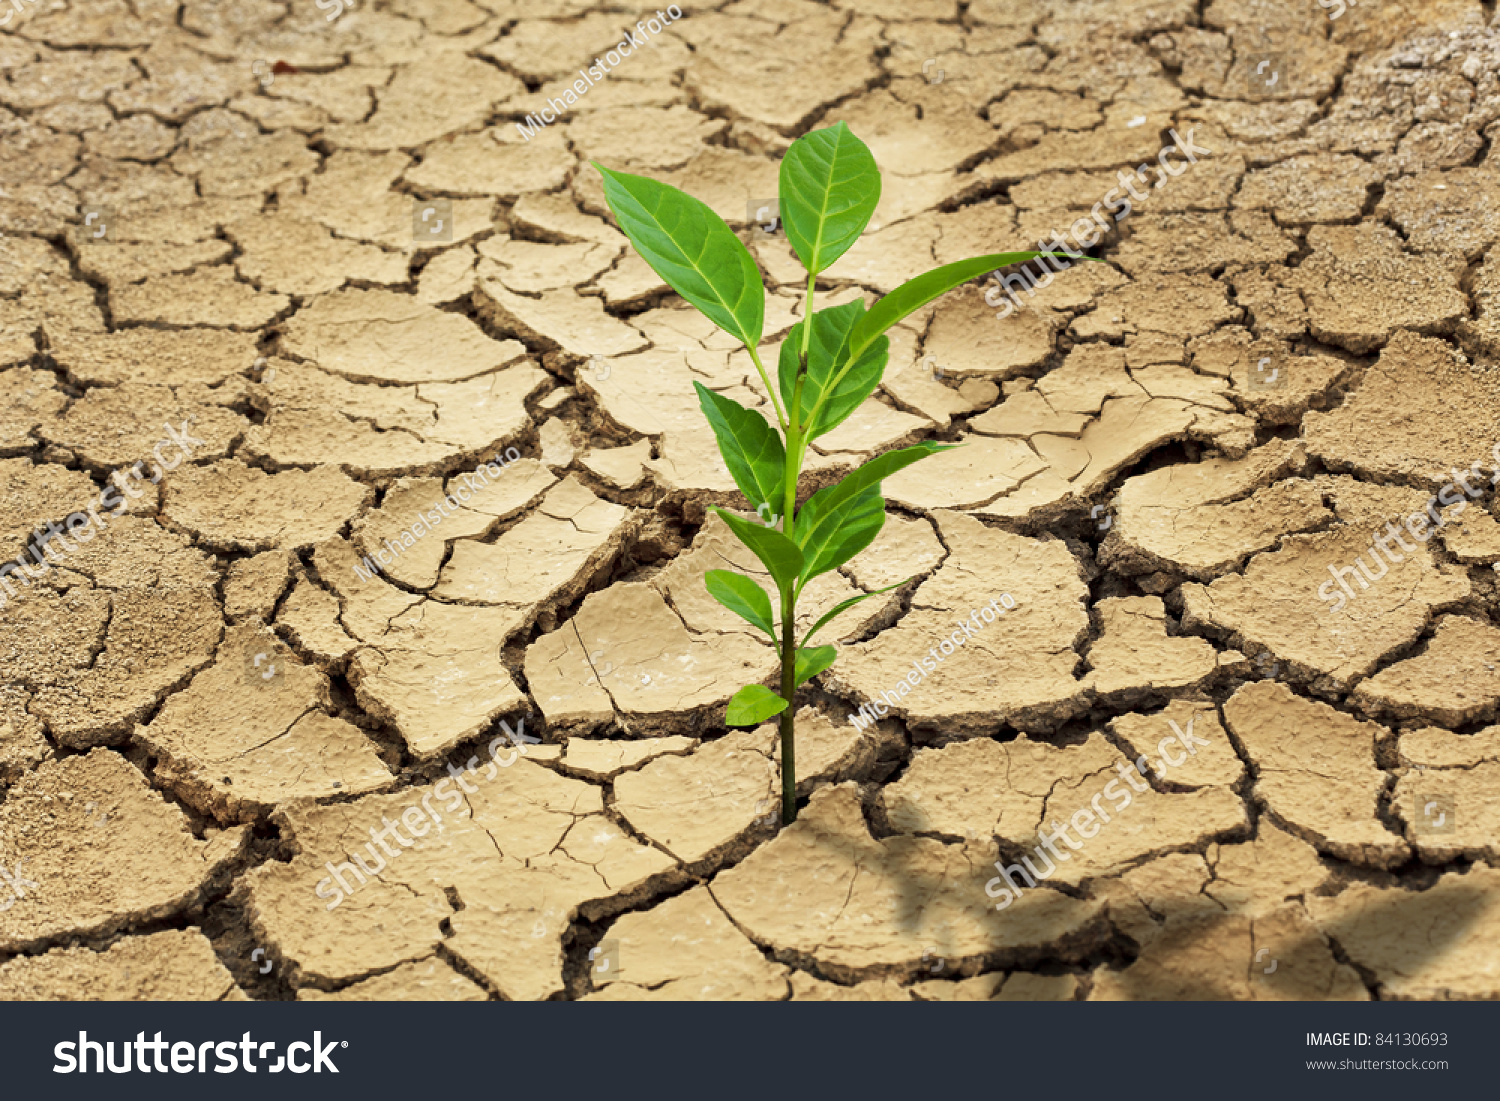 Seed And Dry Soil In Arid Areas Stock Photo 84130693 ...